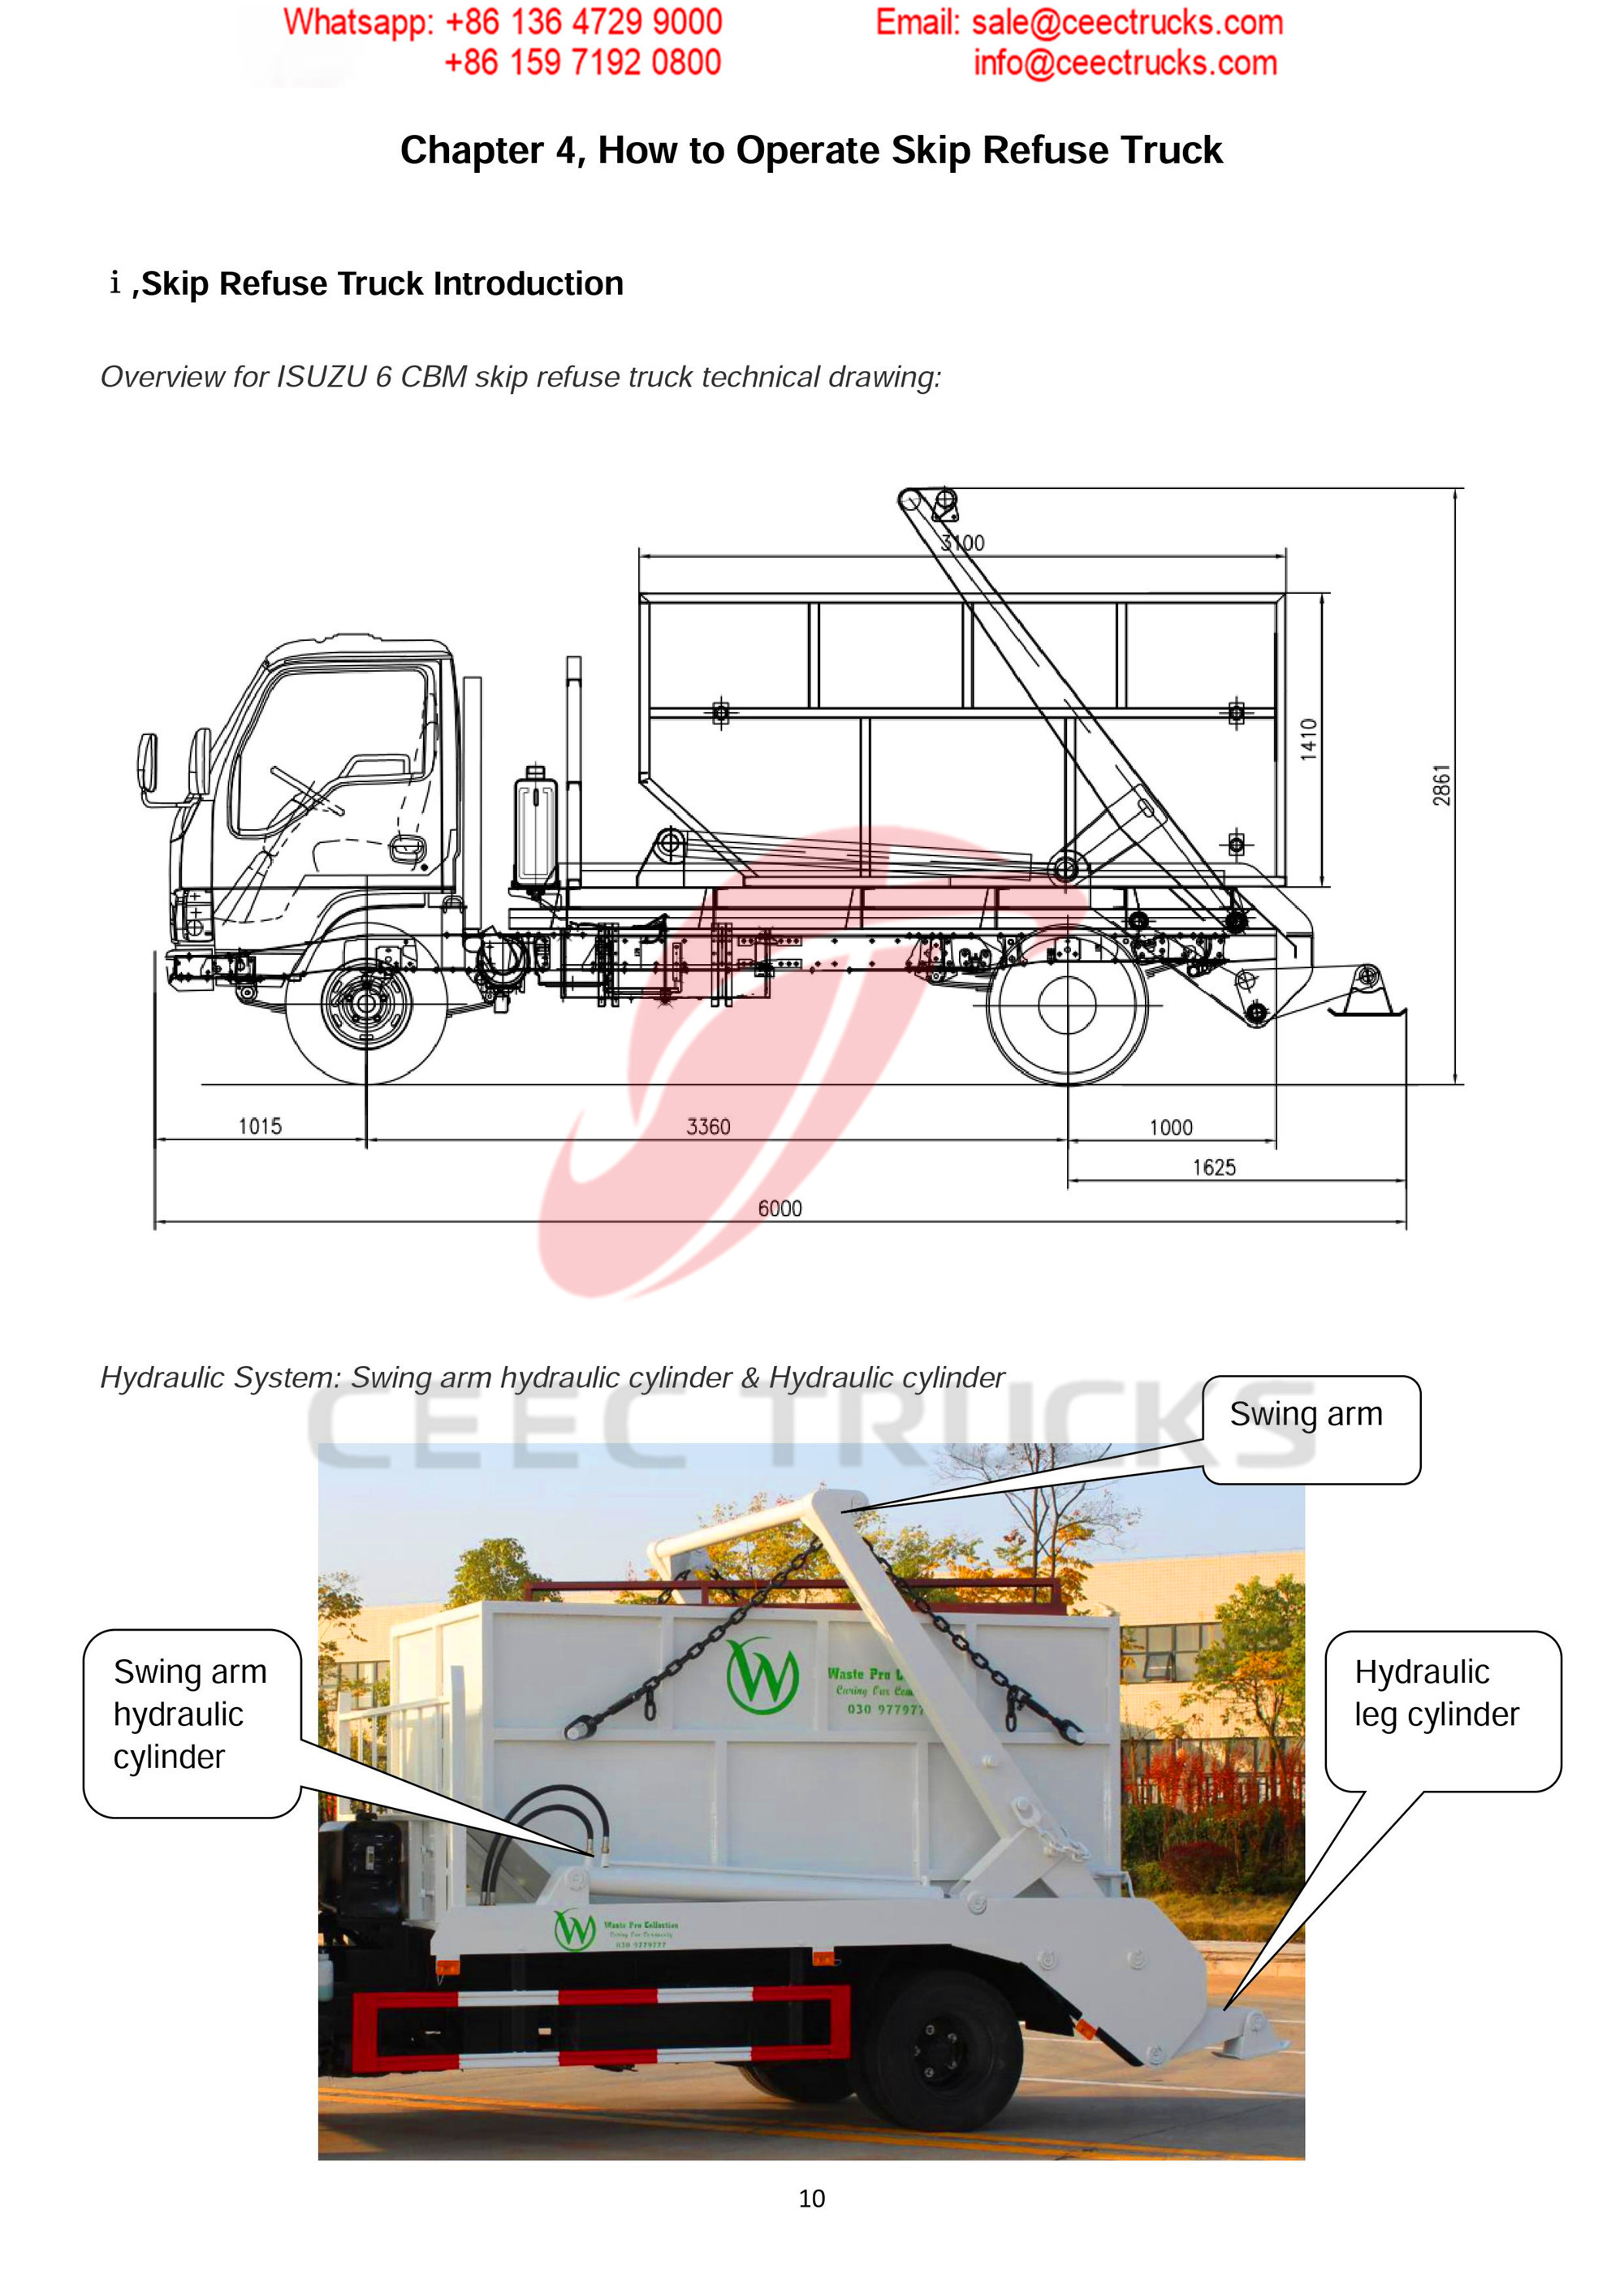 ISUZU 6CBM skip refuse truck Operation Manual